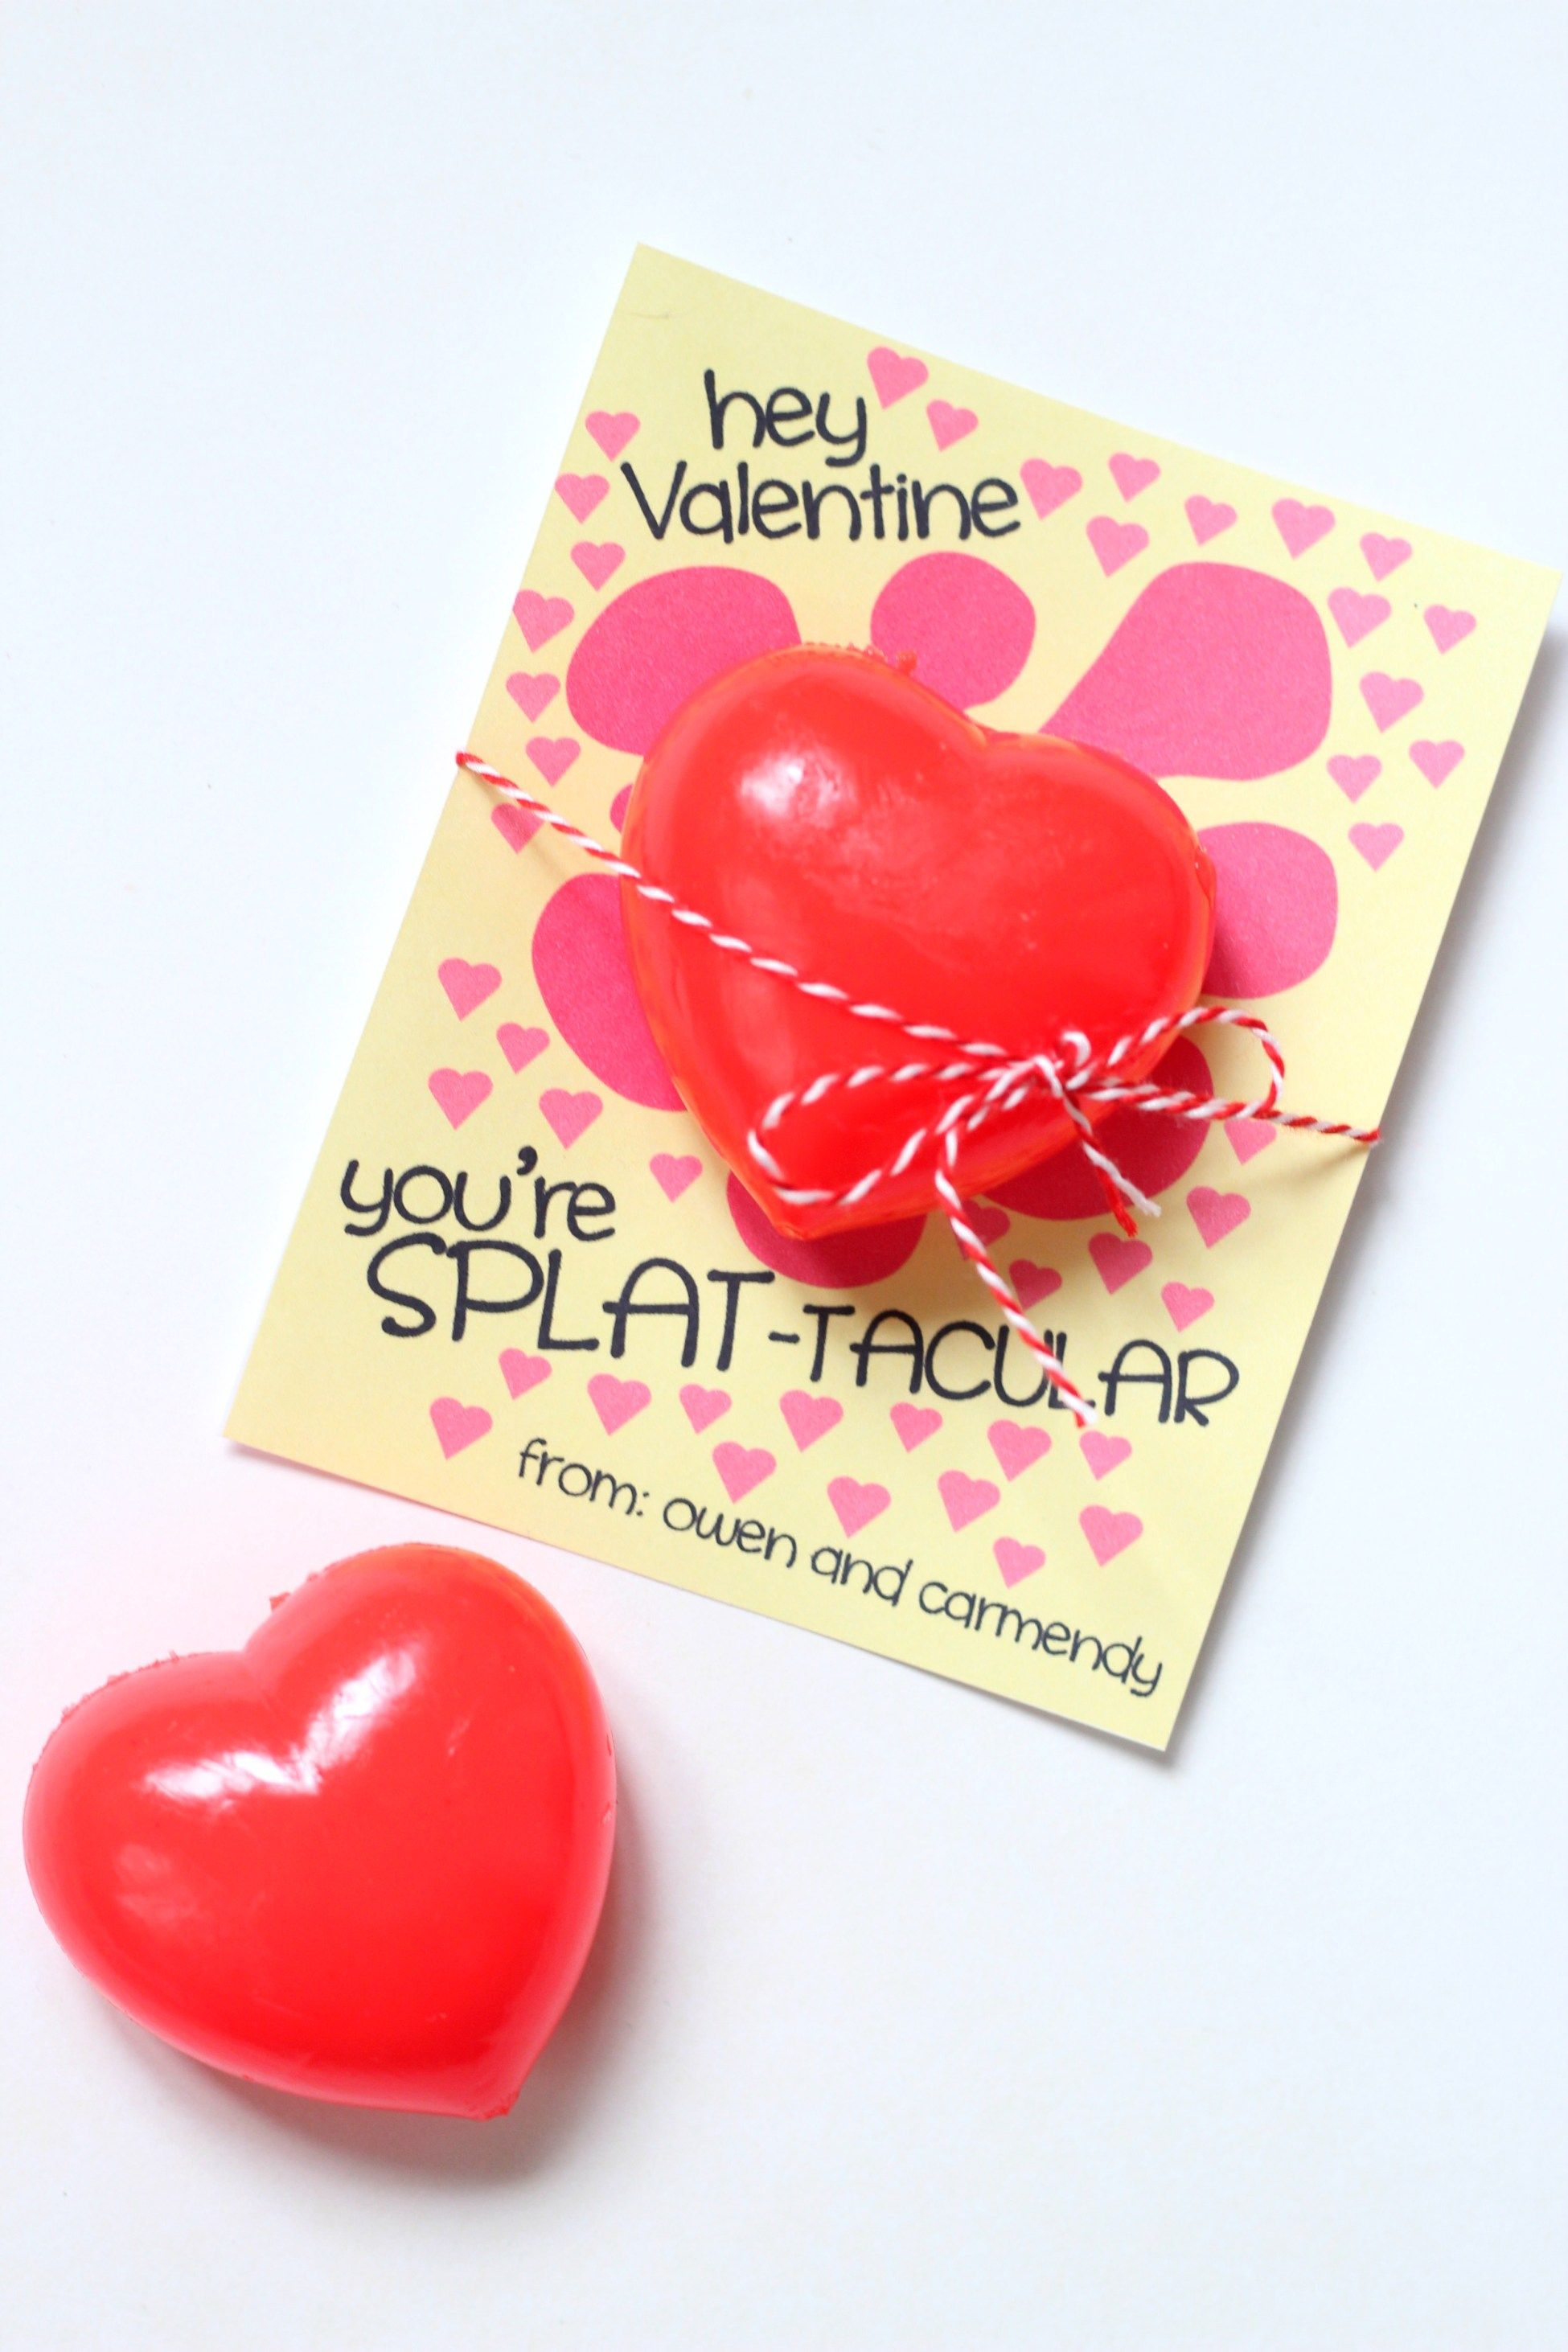 Heart Splat Ball Valentines - non-candy valentine idea with sticky heart toy